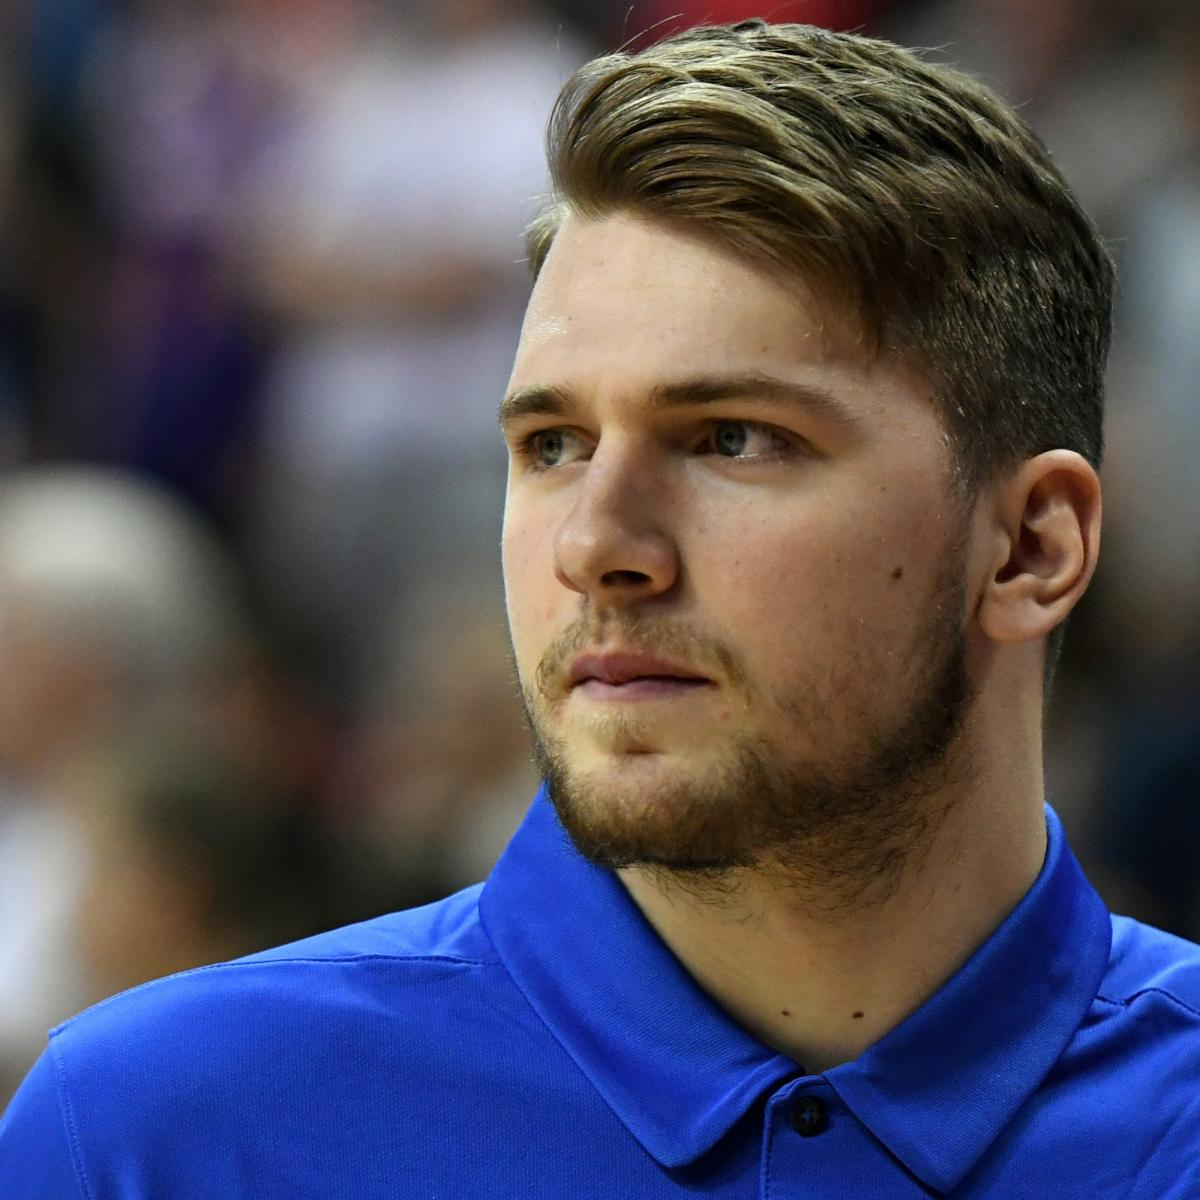 Nba Rookie Award Predictions For 2018 19 Season: NBA Rookie Of The Year Odds: Luka Doncic, Deandre Ayton